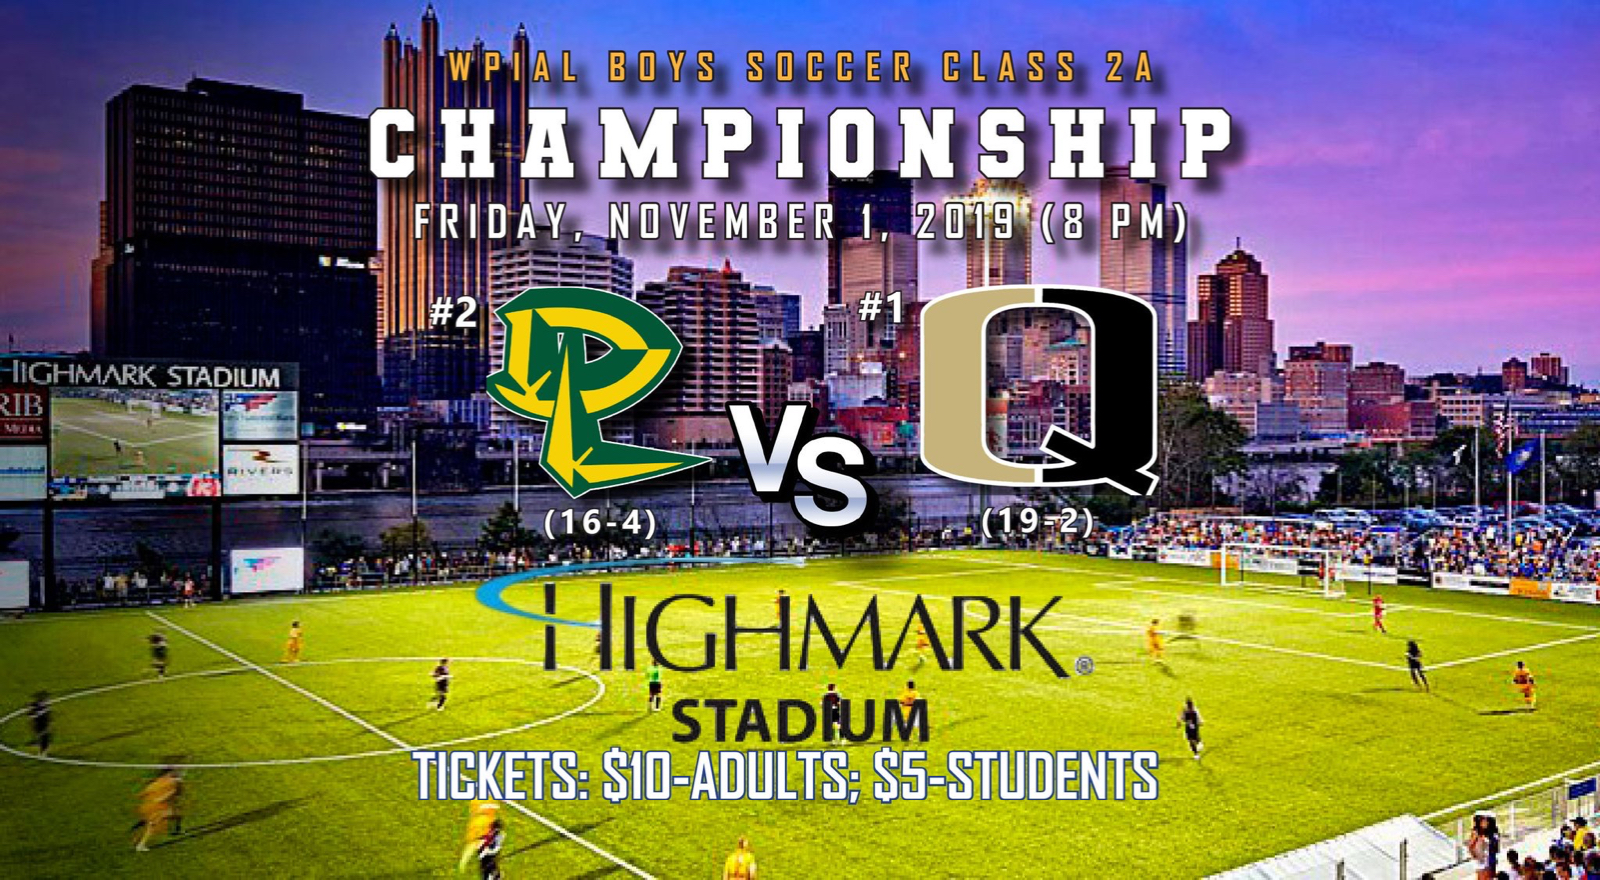 Boys Soccer WPIAL 2A Championship Game is set for Friday, November 1 at 8 PM @ Highmark Stadium